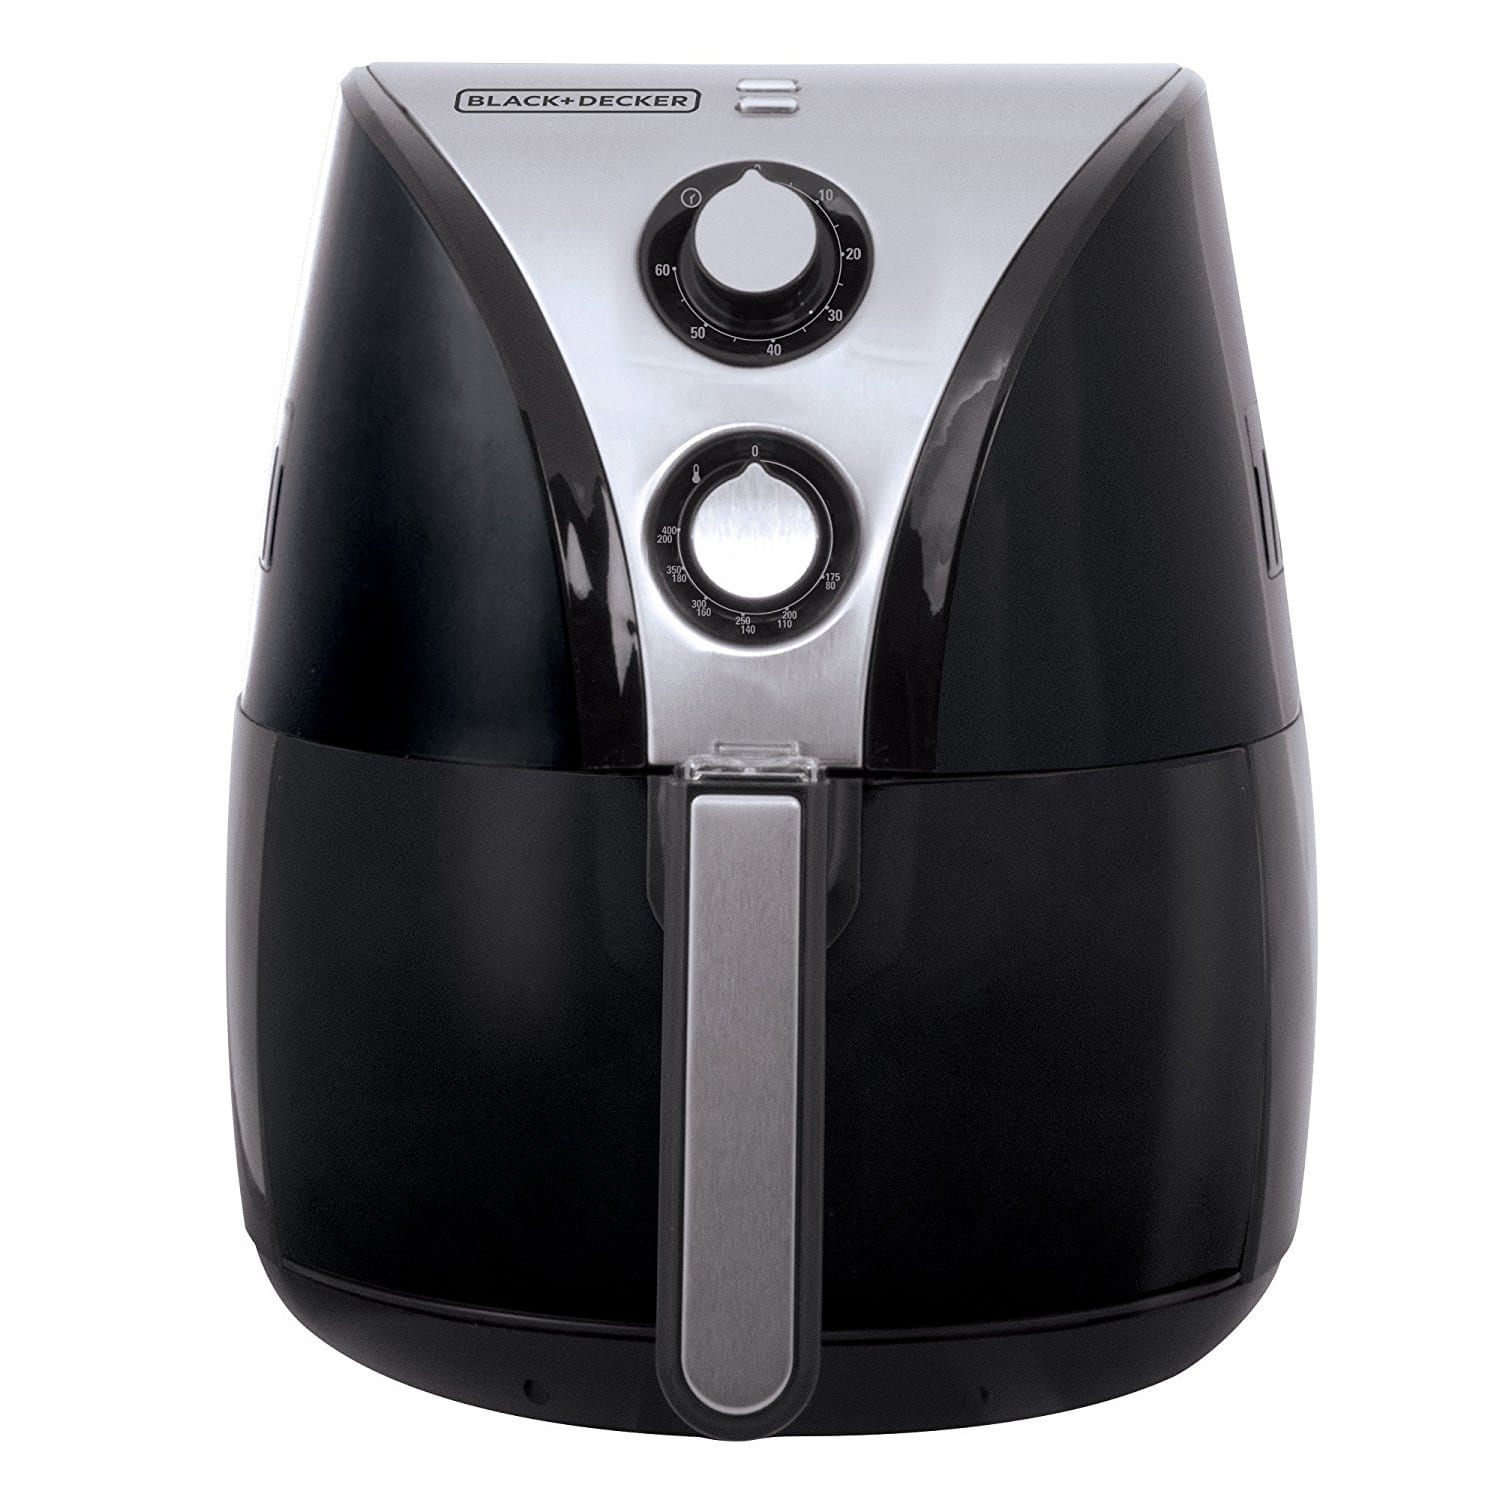 BLACK+DECKER Purify 2-Liter Air Fryer, Black/Stainless Steel, HF110SBD [Black] sold by Amazon $50